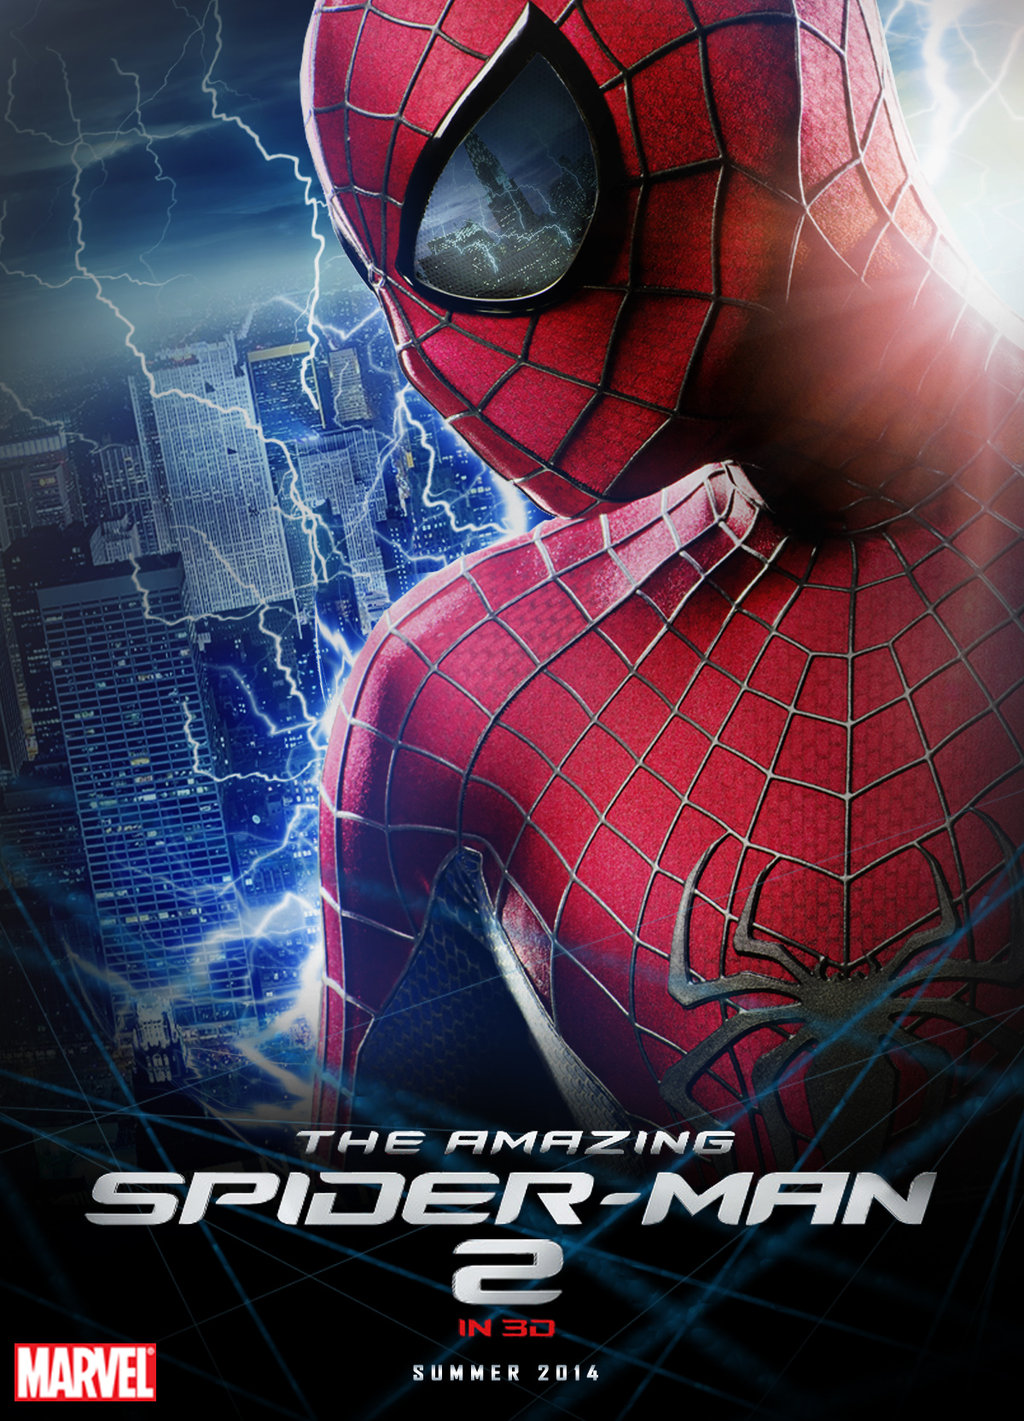 the-amazing-spiderman-2-marvel-poster-hd.jpg